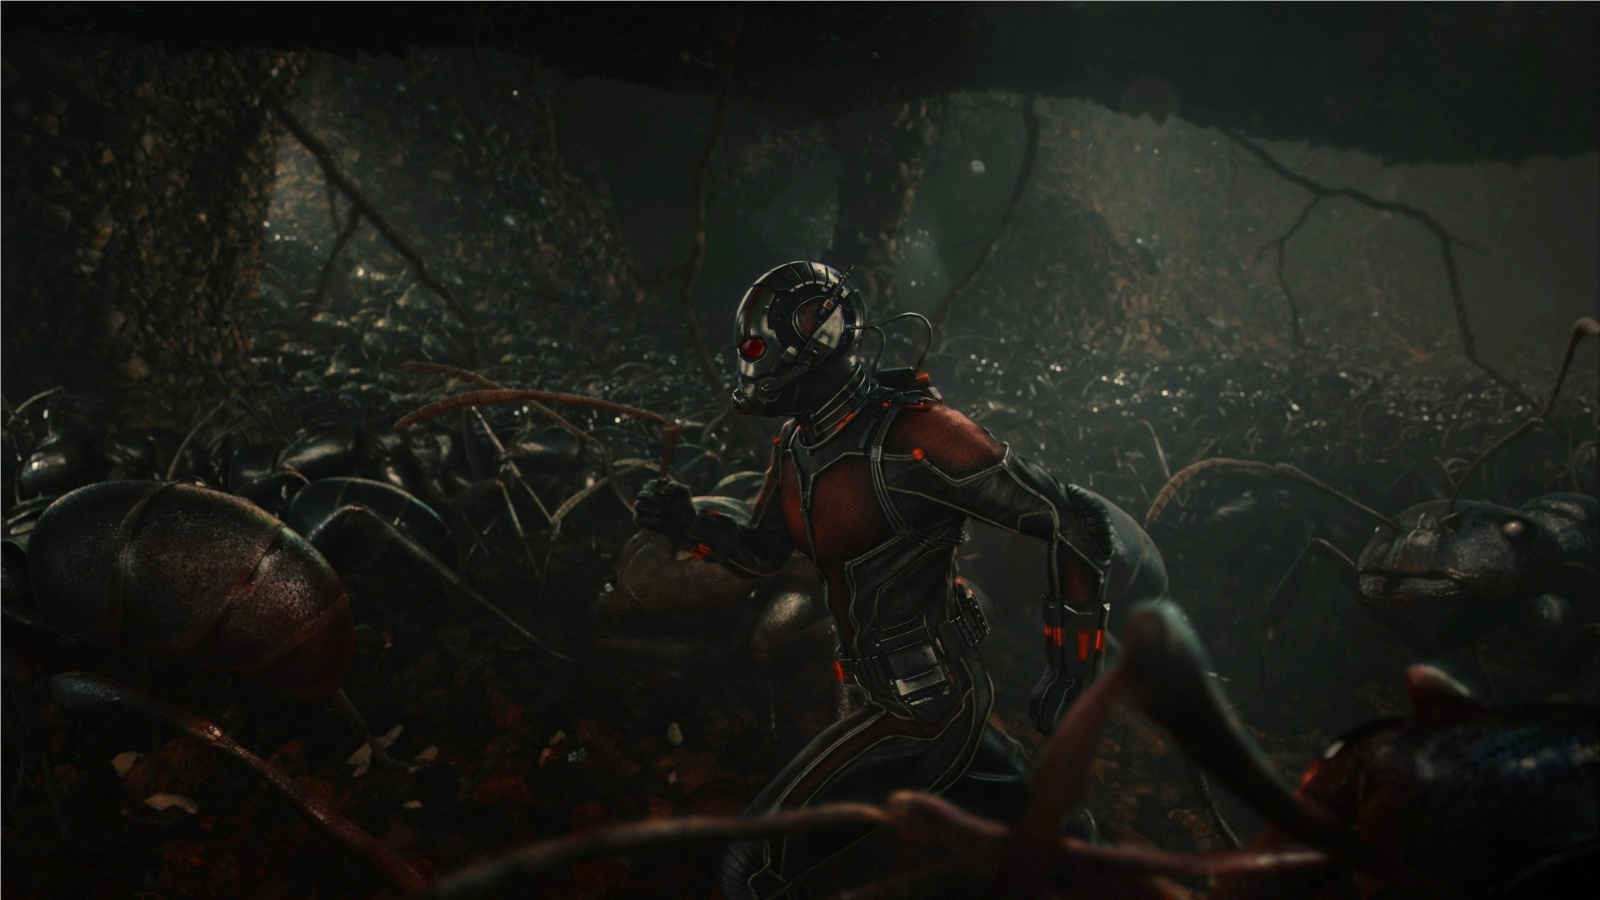 Ant Man With Ants Wallpapers   1600x900   304165 1600x900